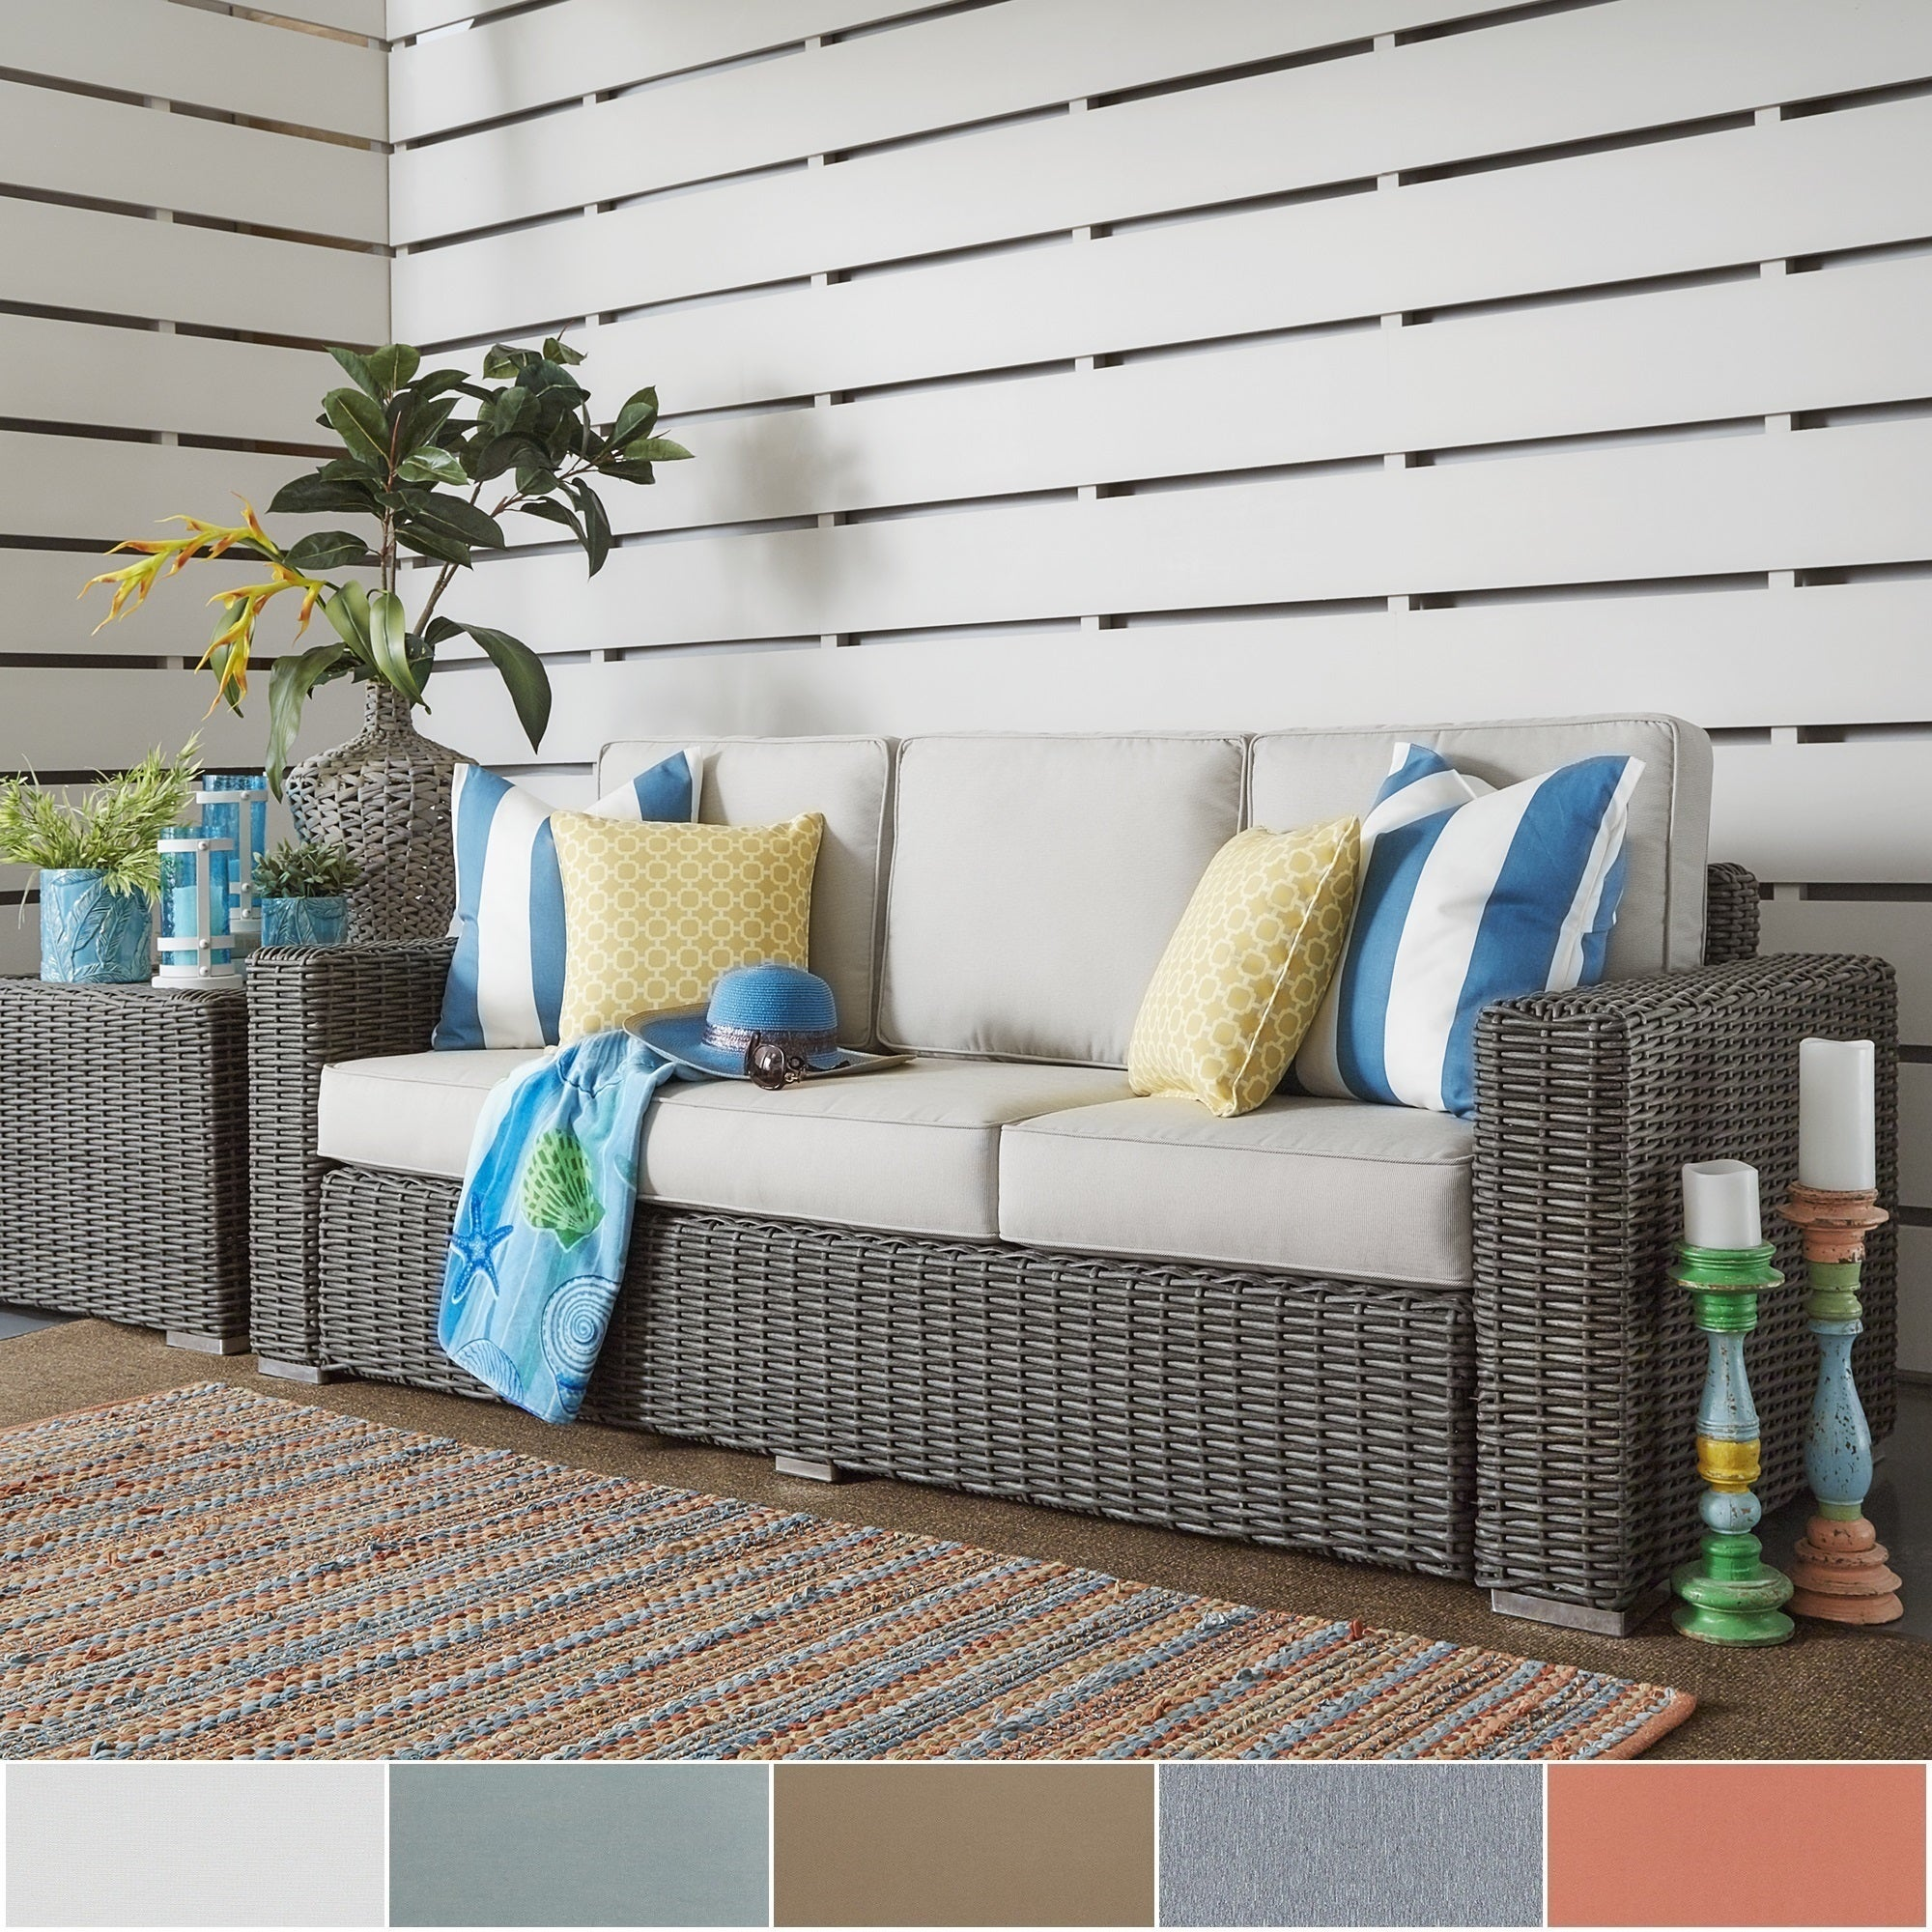 Barbados Wicker Outdoor Cushioned Grey Charcoal Sofa with Square Arm  iNSPIRE Q Oasis - Free Shipping Today - Overstock.com - 19491709